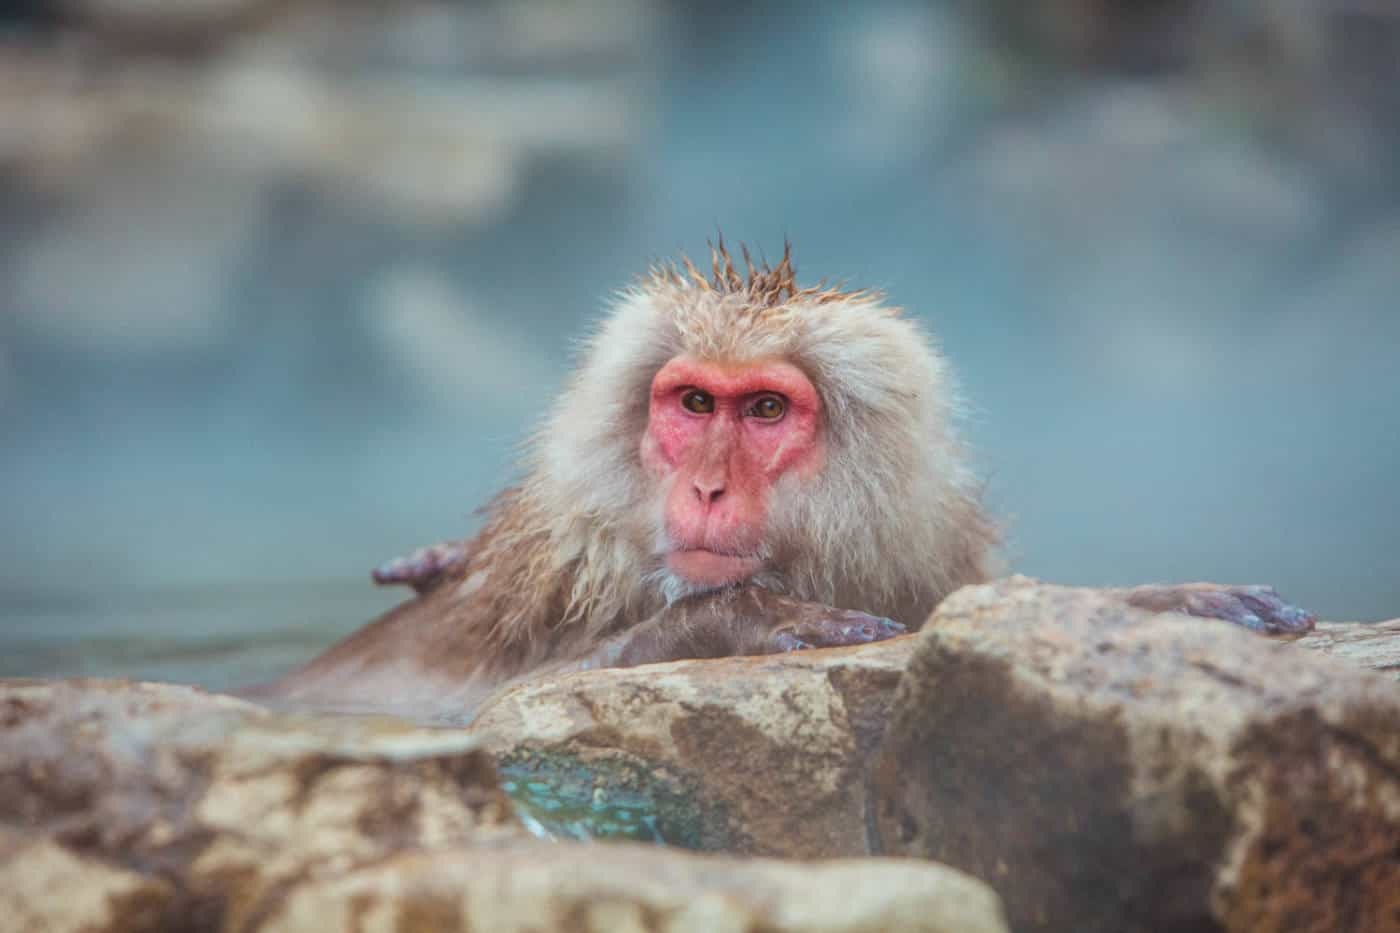 Day trip from Tokyo to see the bathing snow monkeys at Jigokudanai monkey park